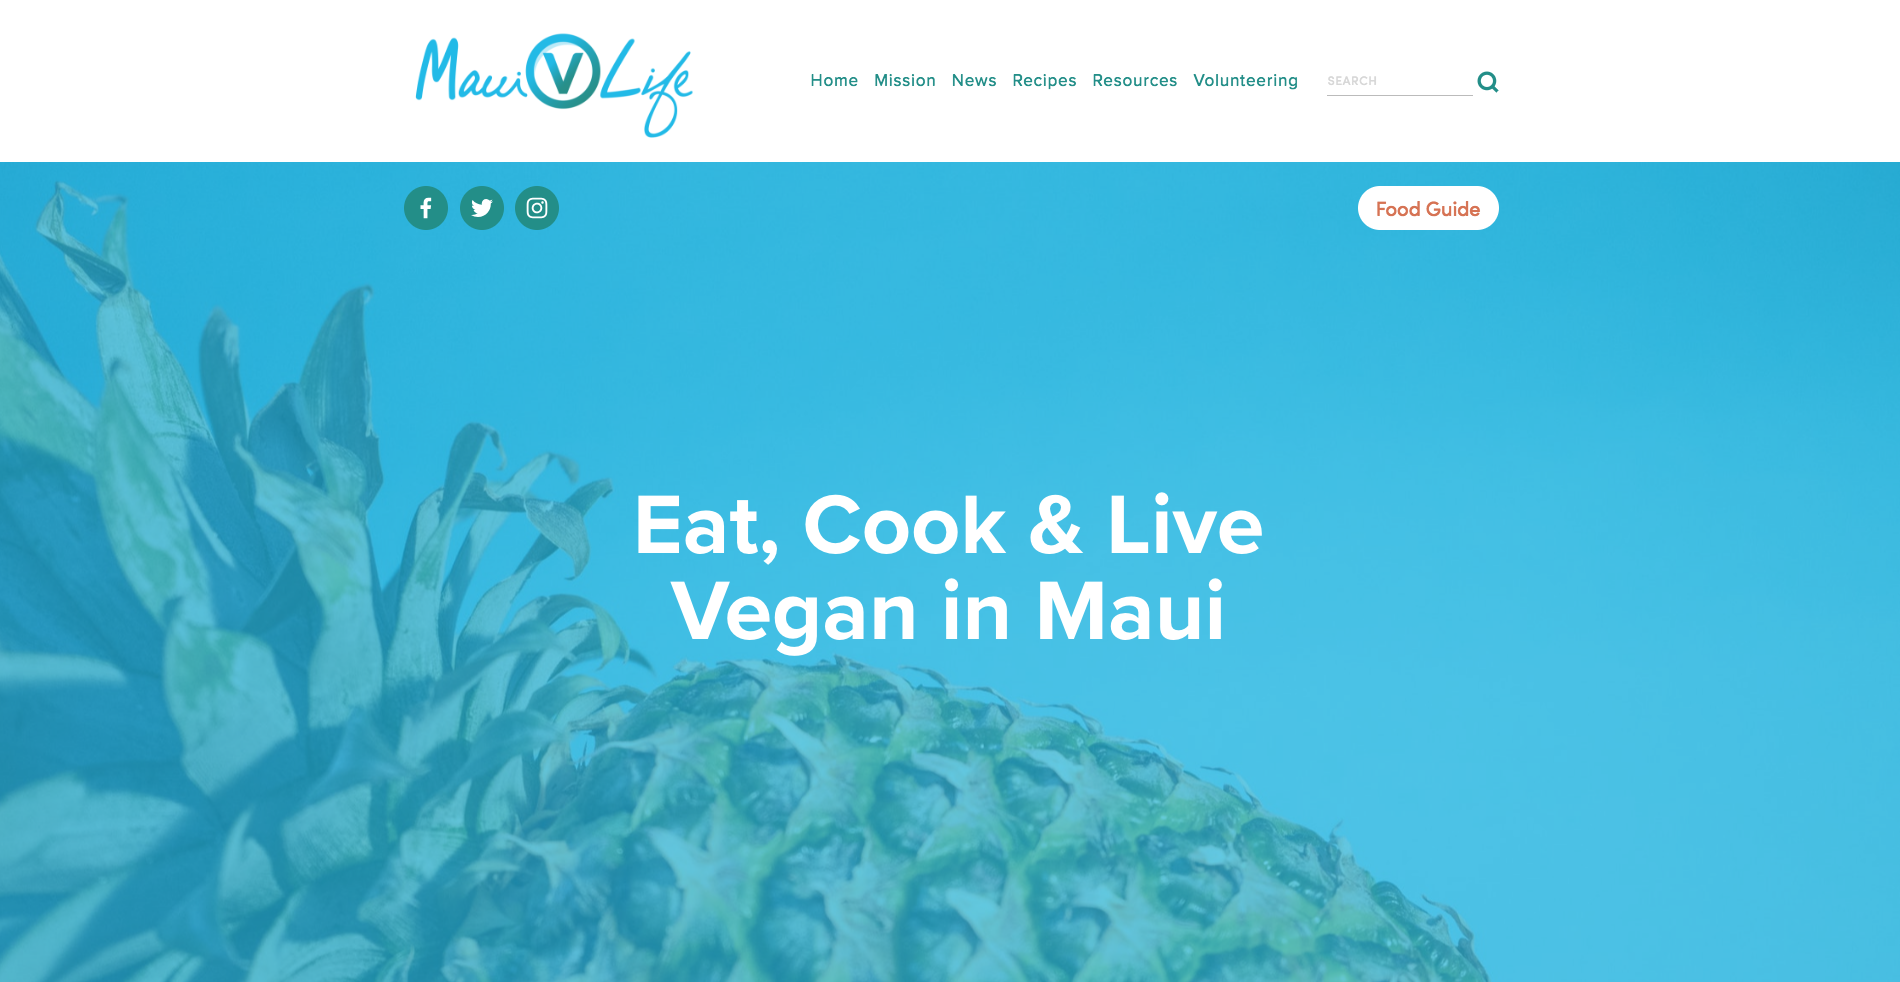 New Website Showcases Maui's Growing Vegan Community